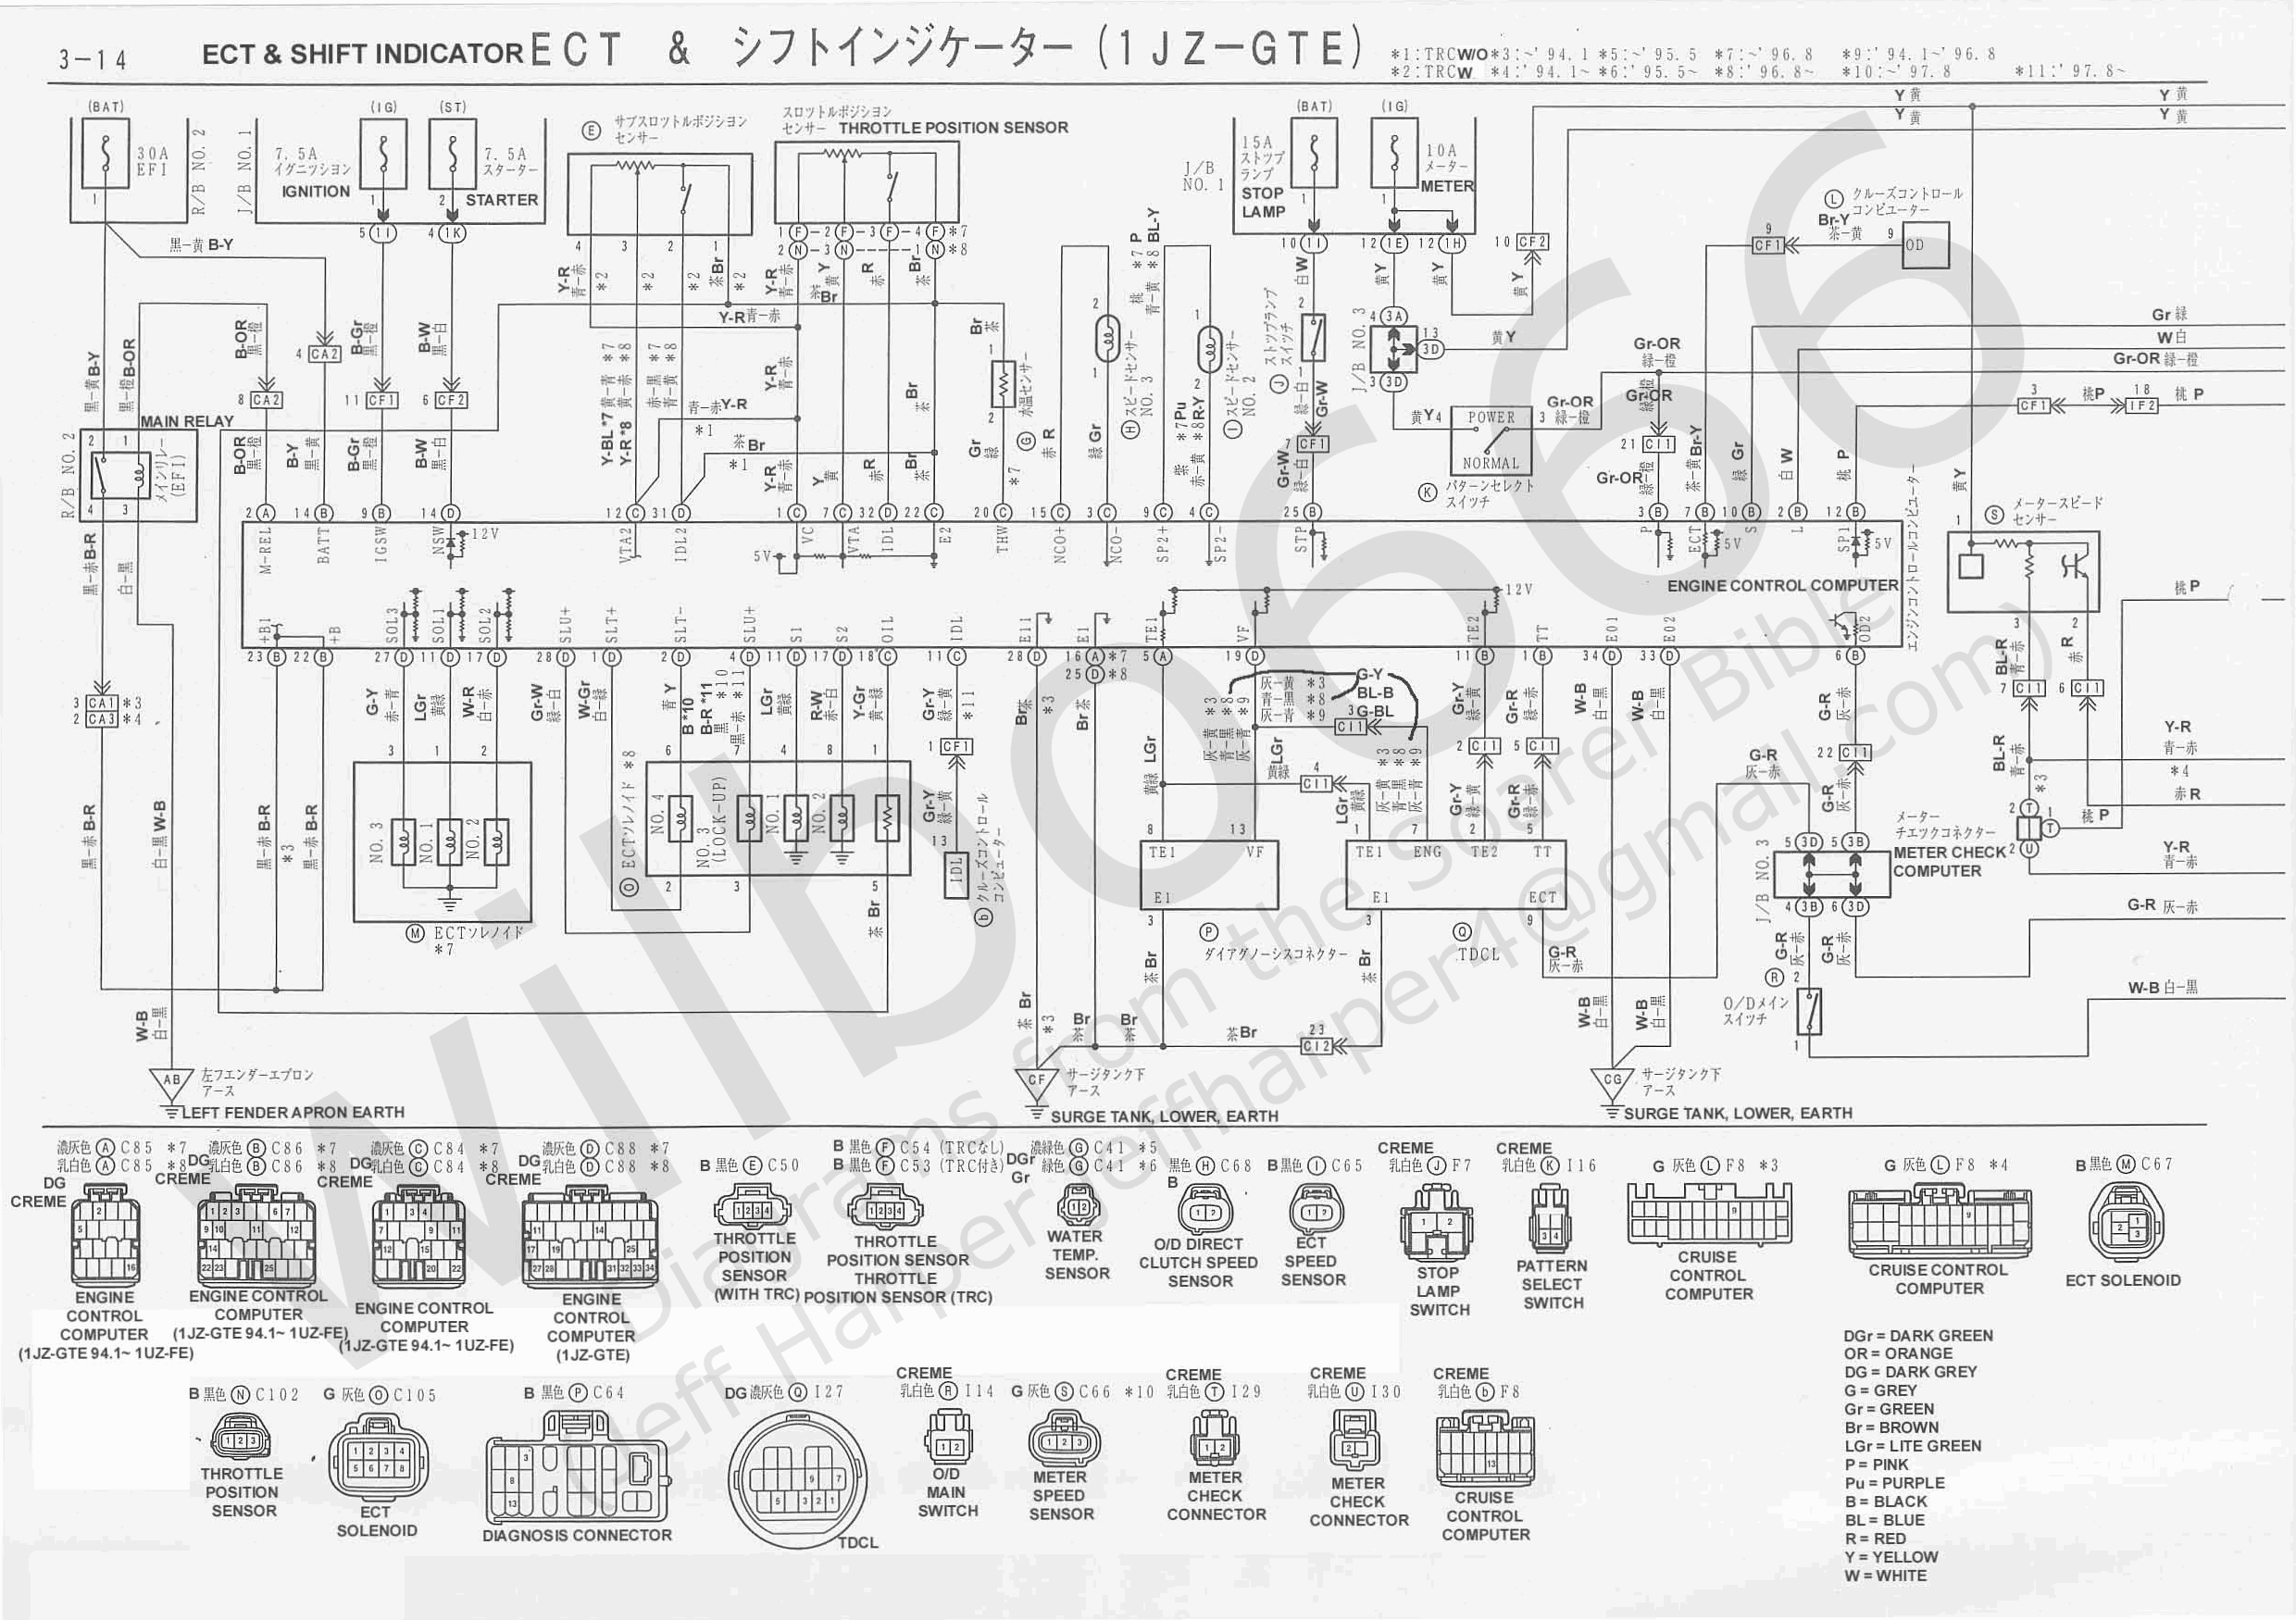 xZZ3x Electrical Wiring Diagram 6737105 3 14?resize\\\\\\\=665%2C469 8 inch bazooka tube wiring diagram bazooka installation diagram bazooka bta850fh wiring diagram at gsmportal.co